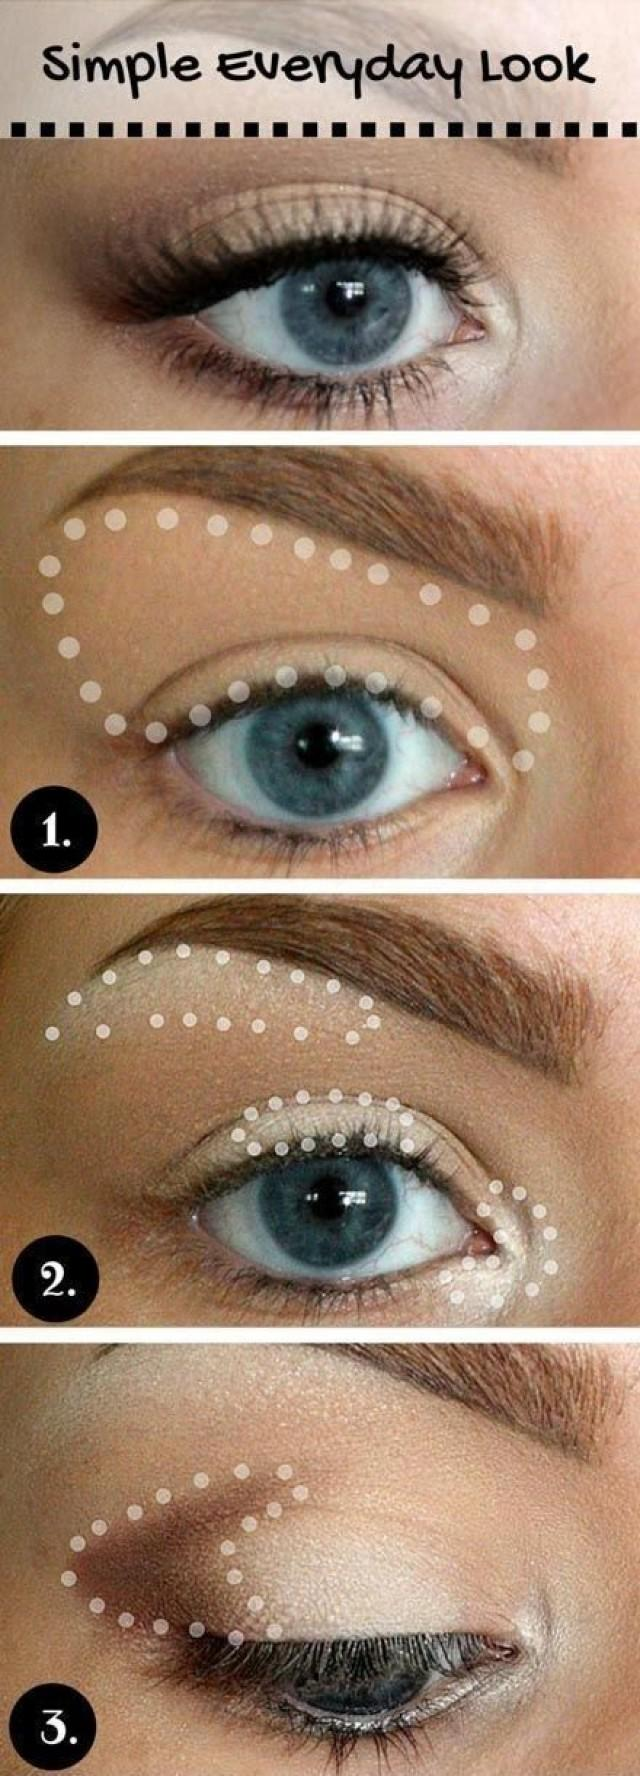 How To Apply Foundation Like A Professional How To Apply Foundation Like A Professional new photo